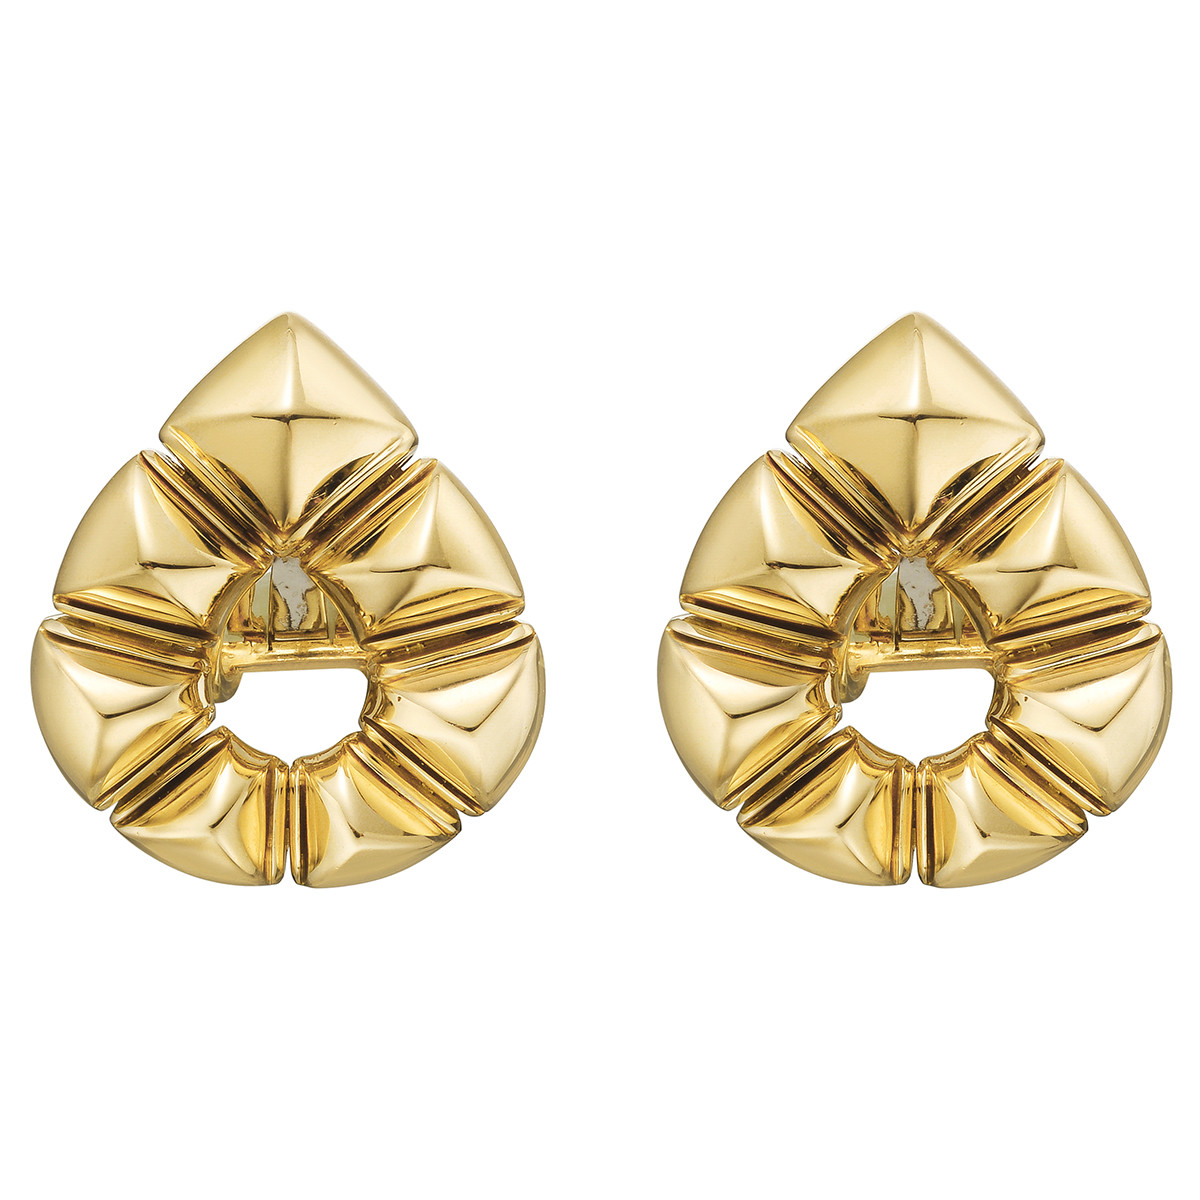 18k Yellow Gold Pyramid Pear-Shaped Earclips